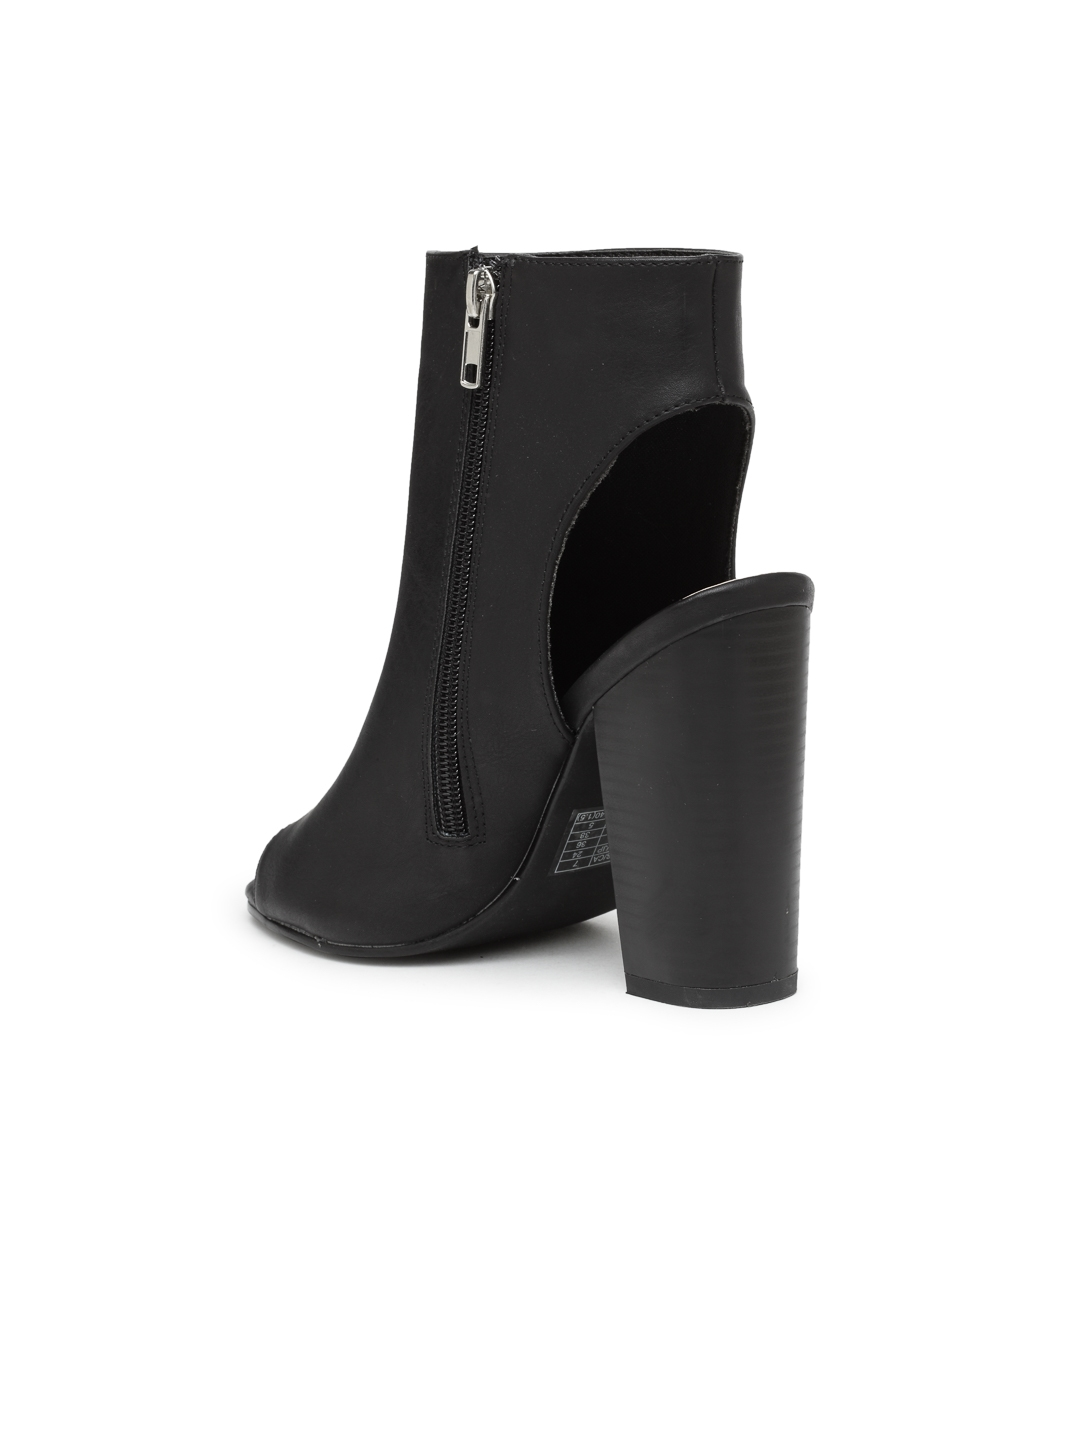 8392539e6c9b Buy FOREVER 21 Women Black Solid Heeled Boots - Heels for Women ...